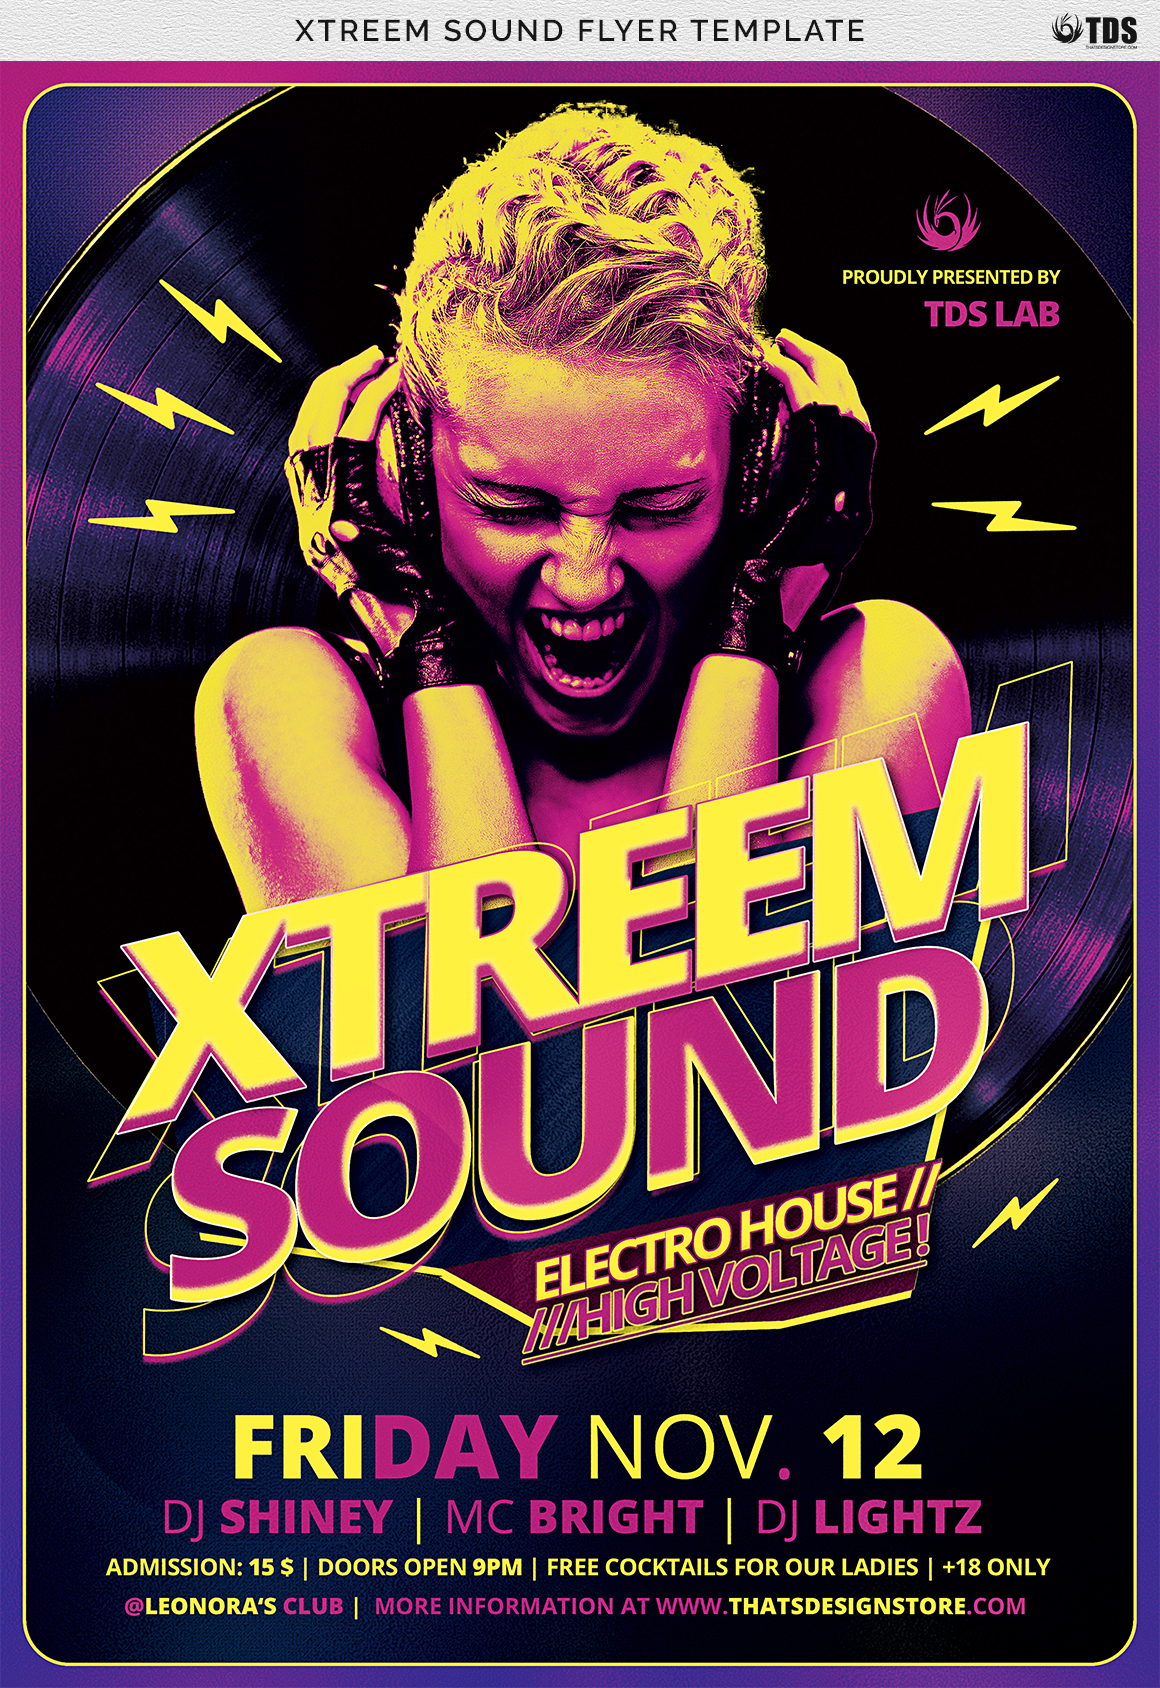 Xtreem Sound Flyer Template example image 7